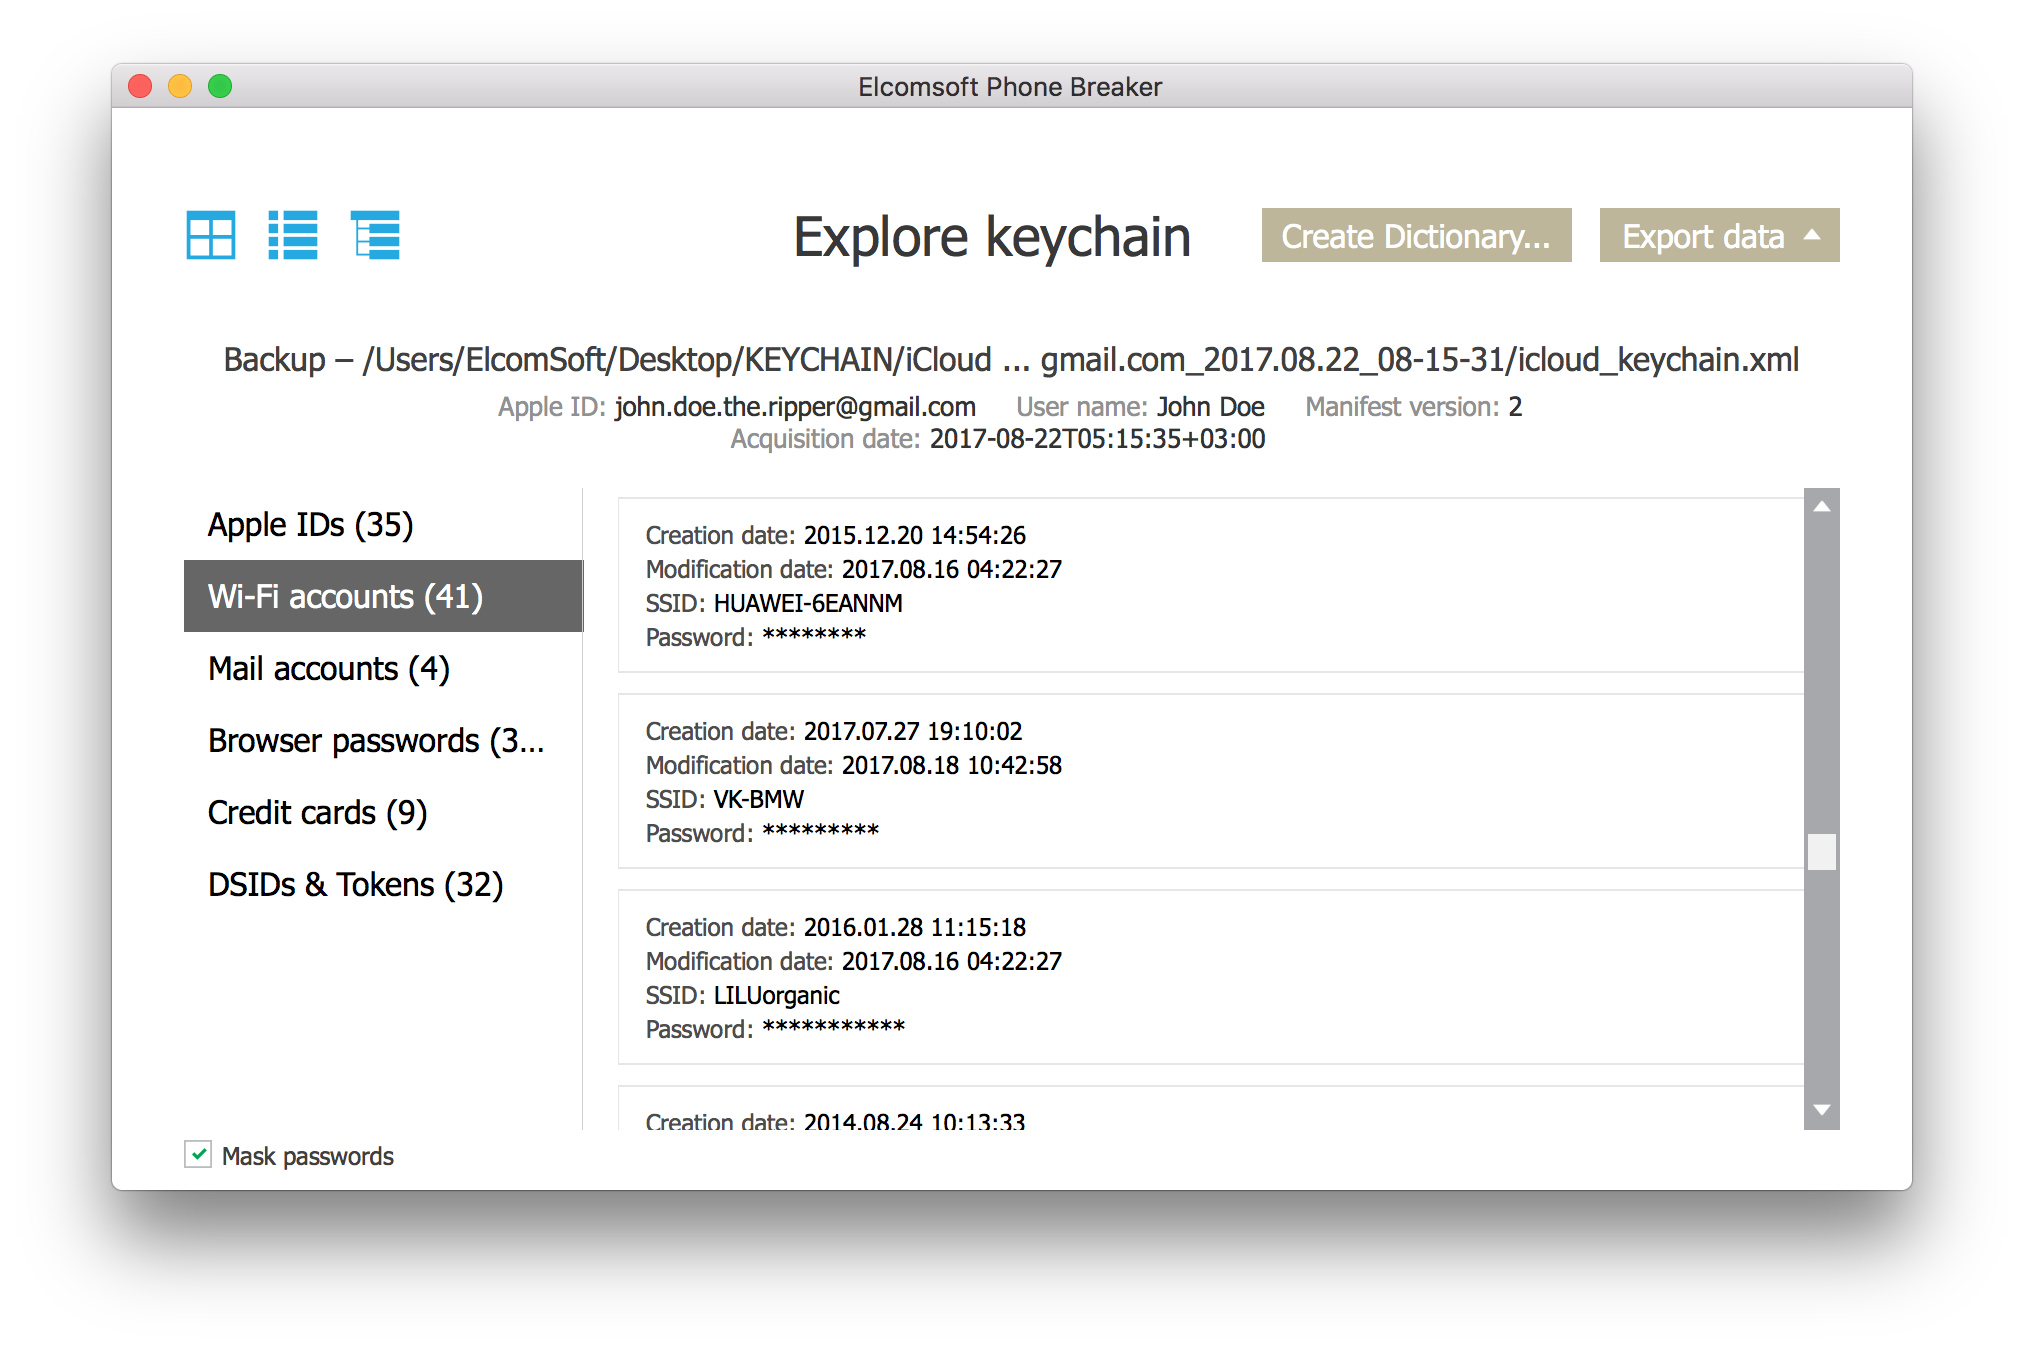 Sign in with an Apple ID and password  Supply iCloud Security Code 6a5347ae88